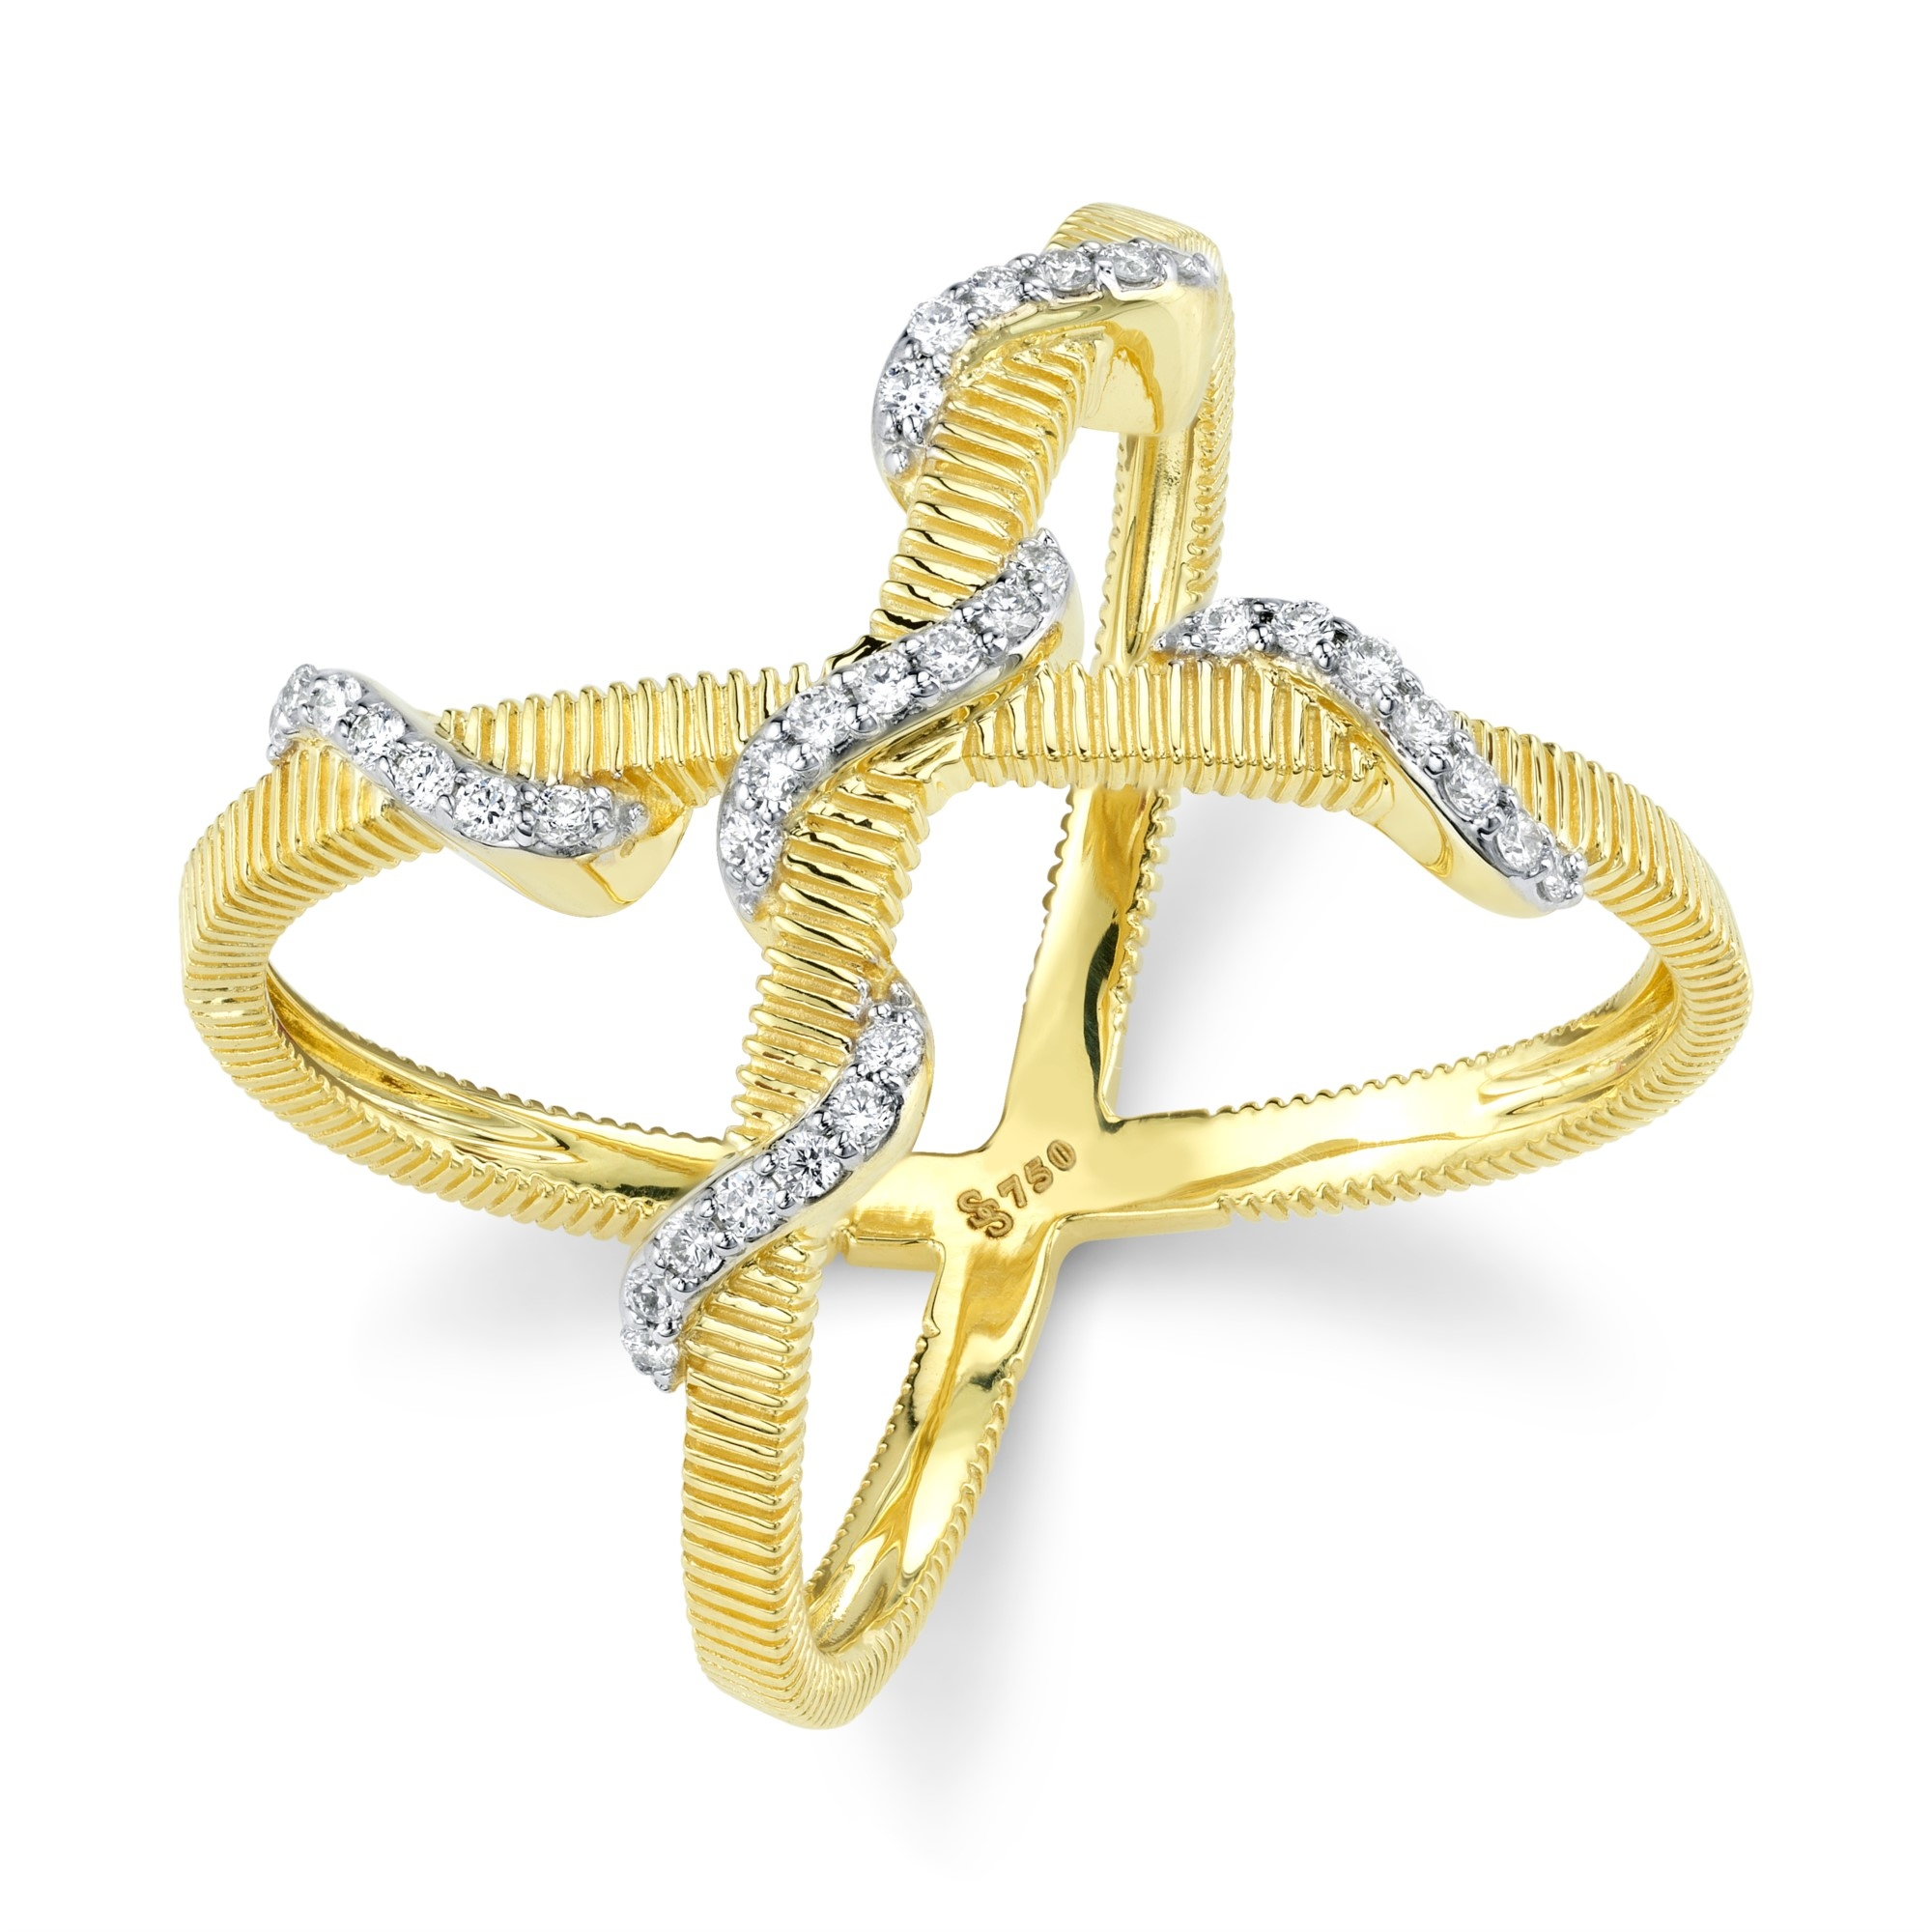 Sloane Street 18K Yellow Gold .17cts  Diamonds Gold Ring with Stones R008F-WDCB-Y